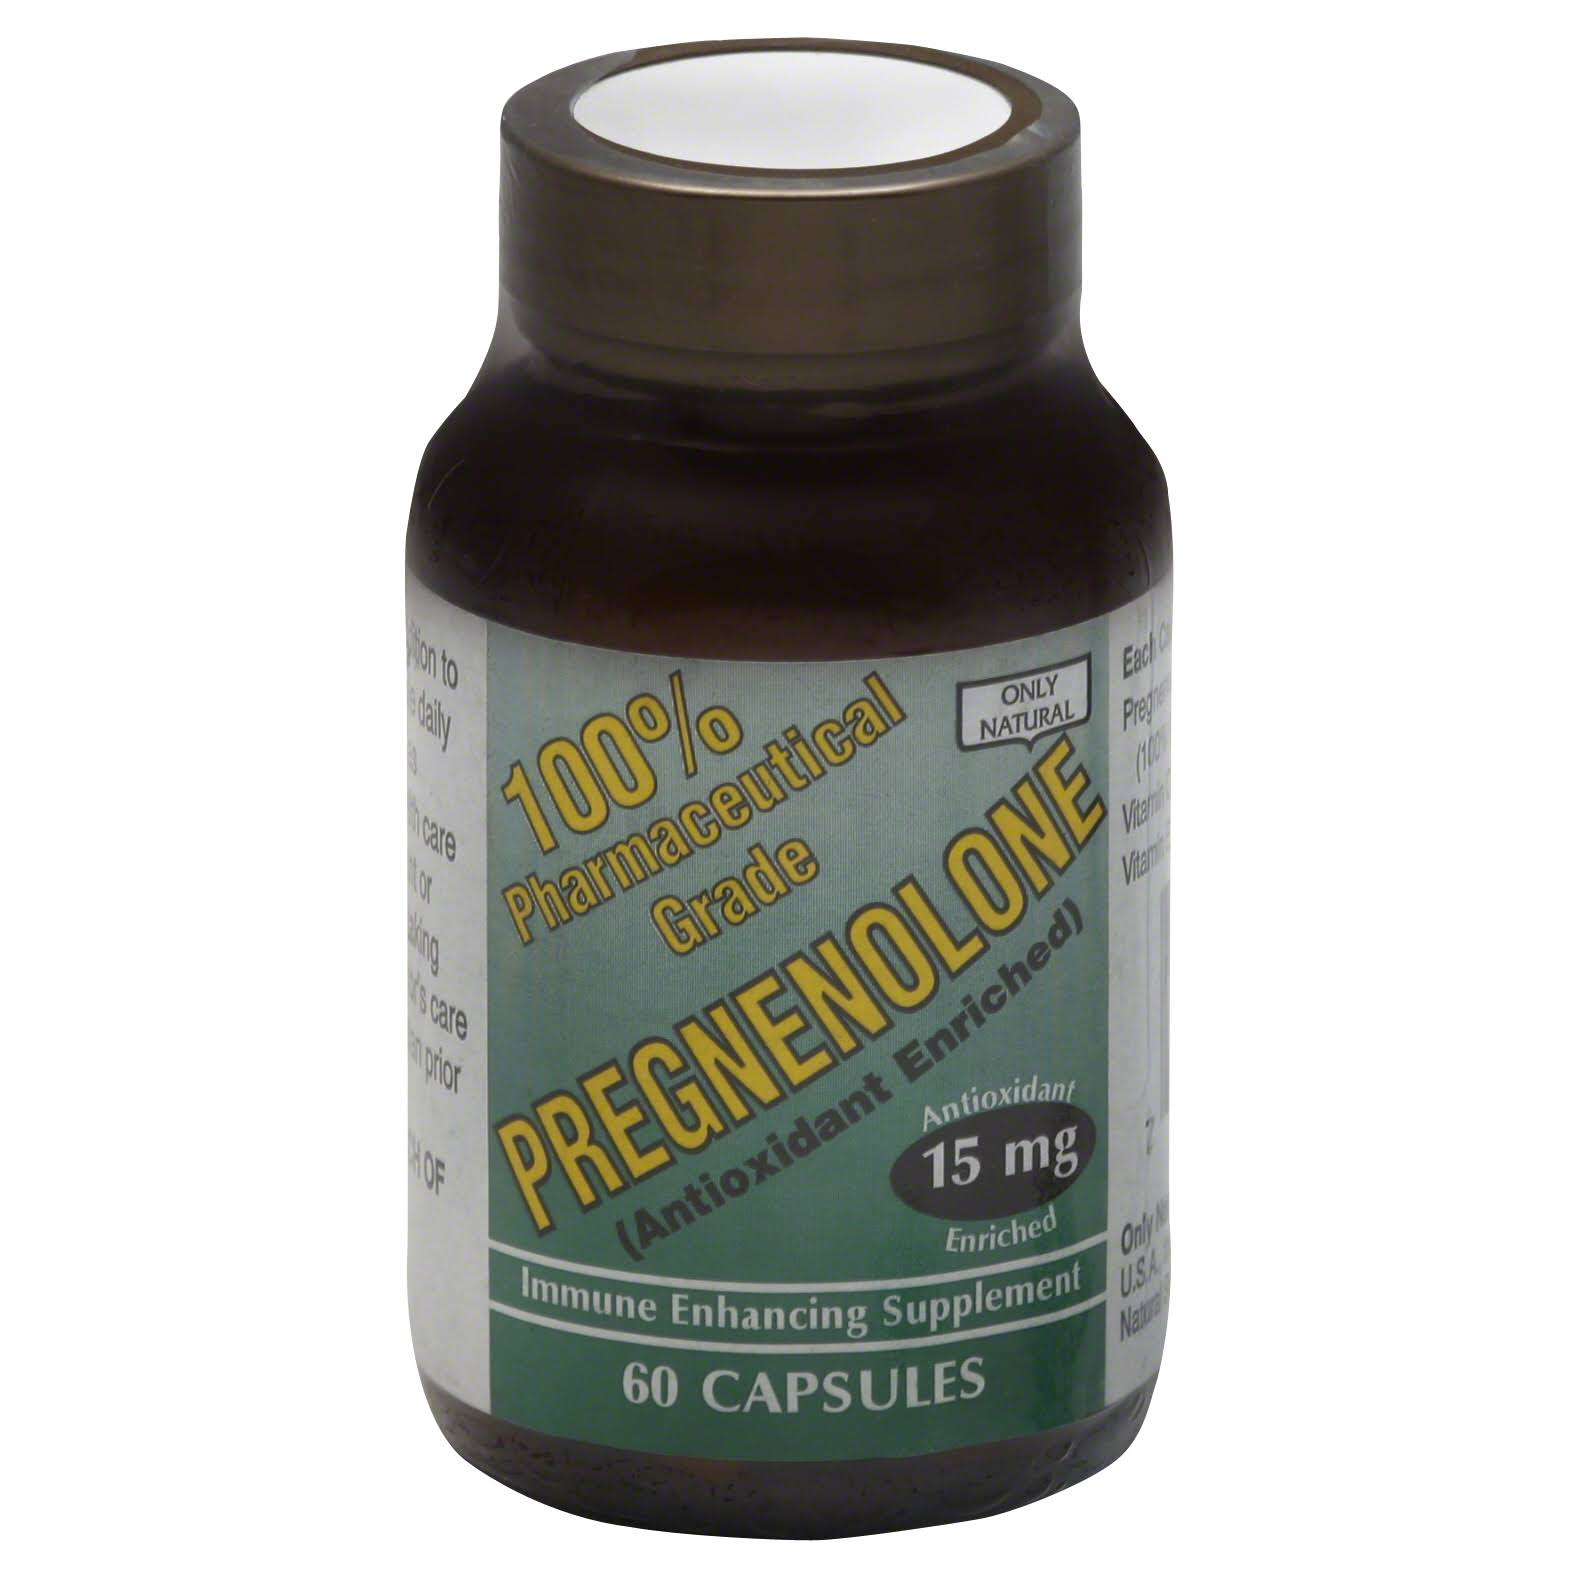 Only Natural Pregnenolone Enhancing Supplement - 15mg, 60ct